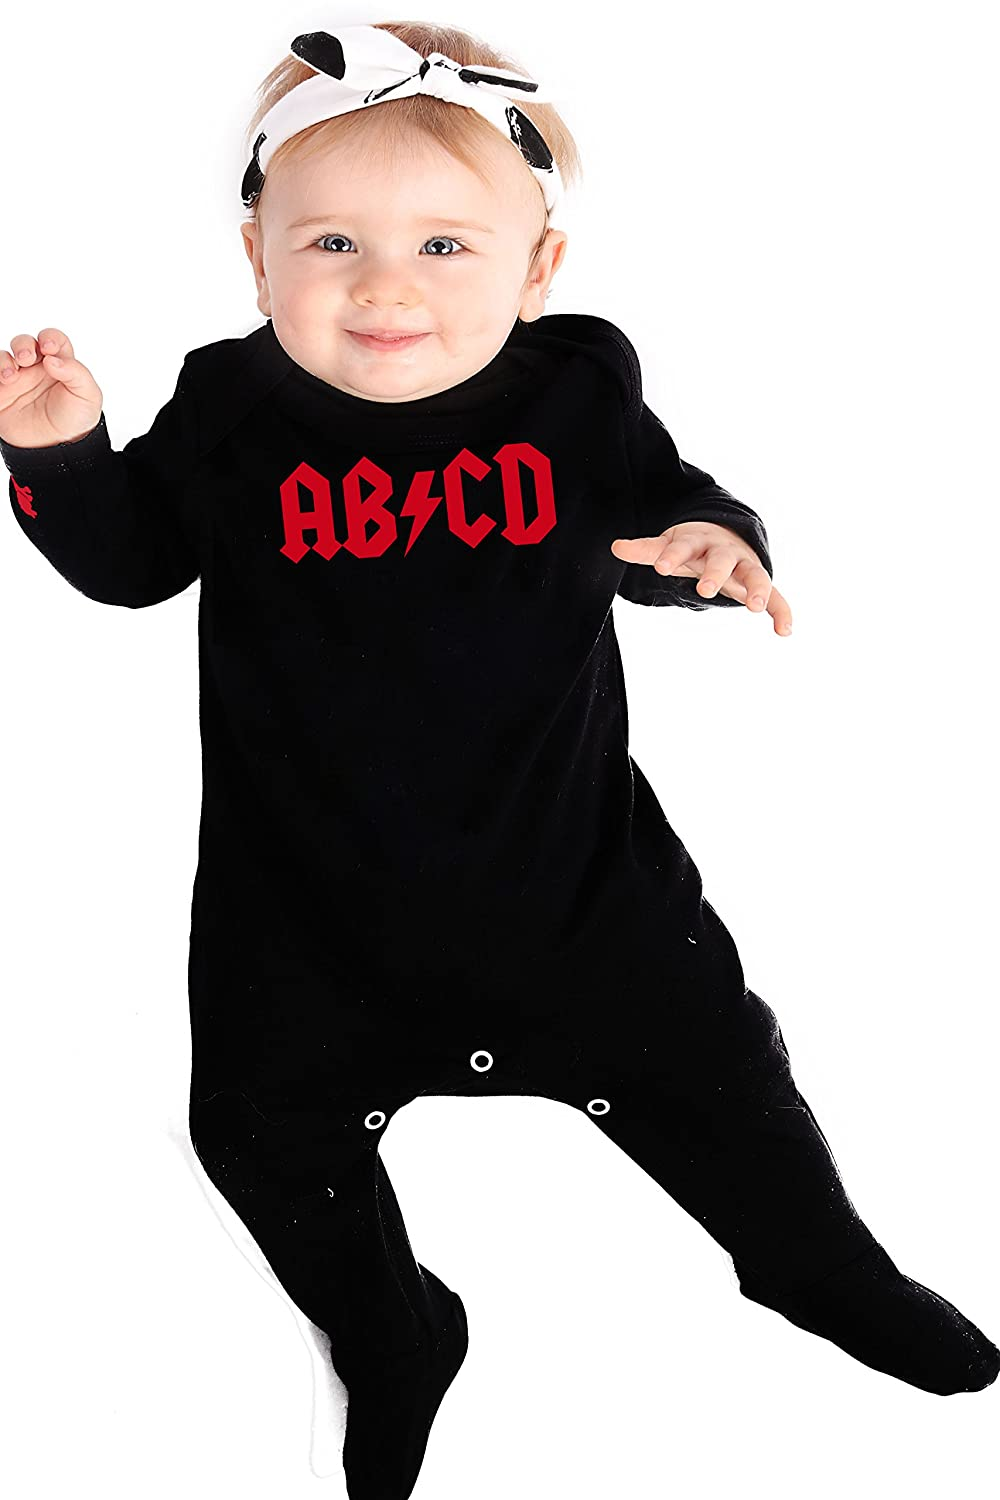 Rock N Roll Baby Sleepsuit For Boys Or Girls New Cool Ab Cd Ac